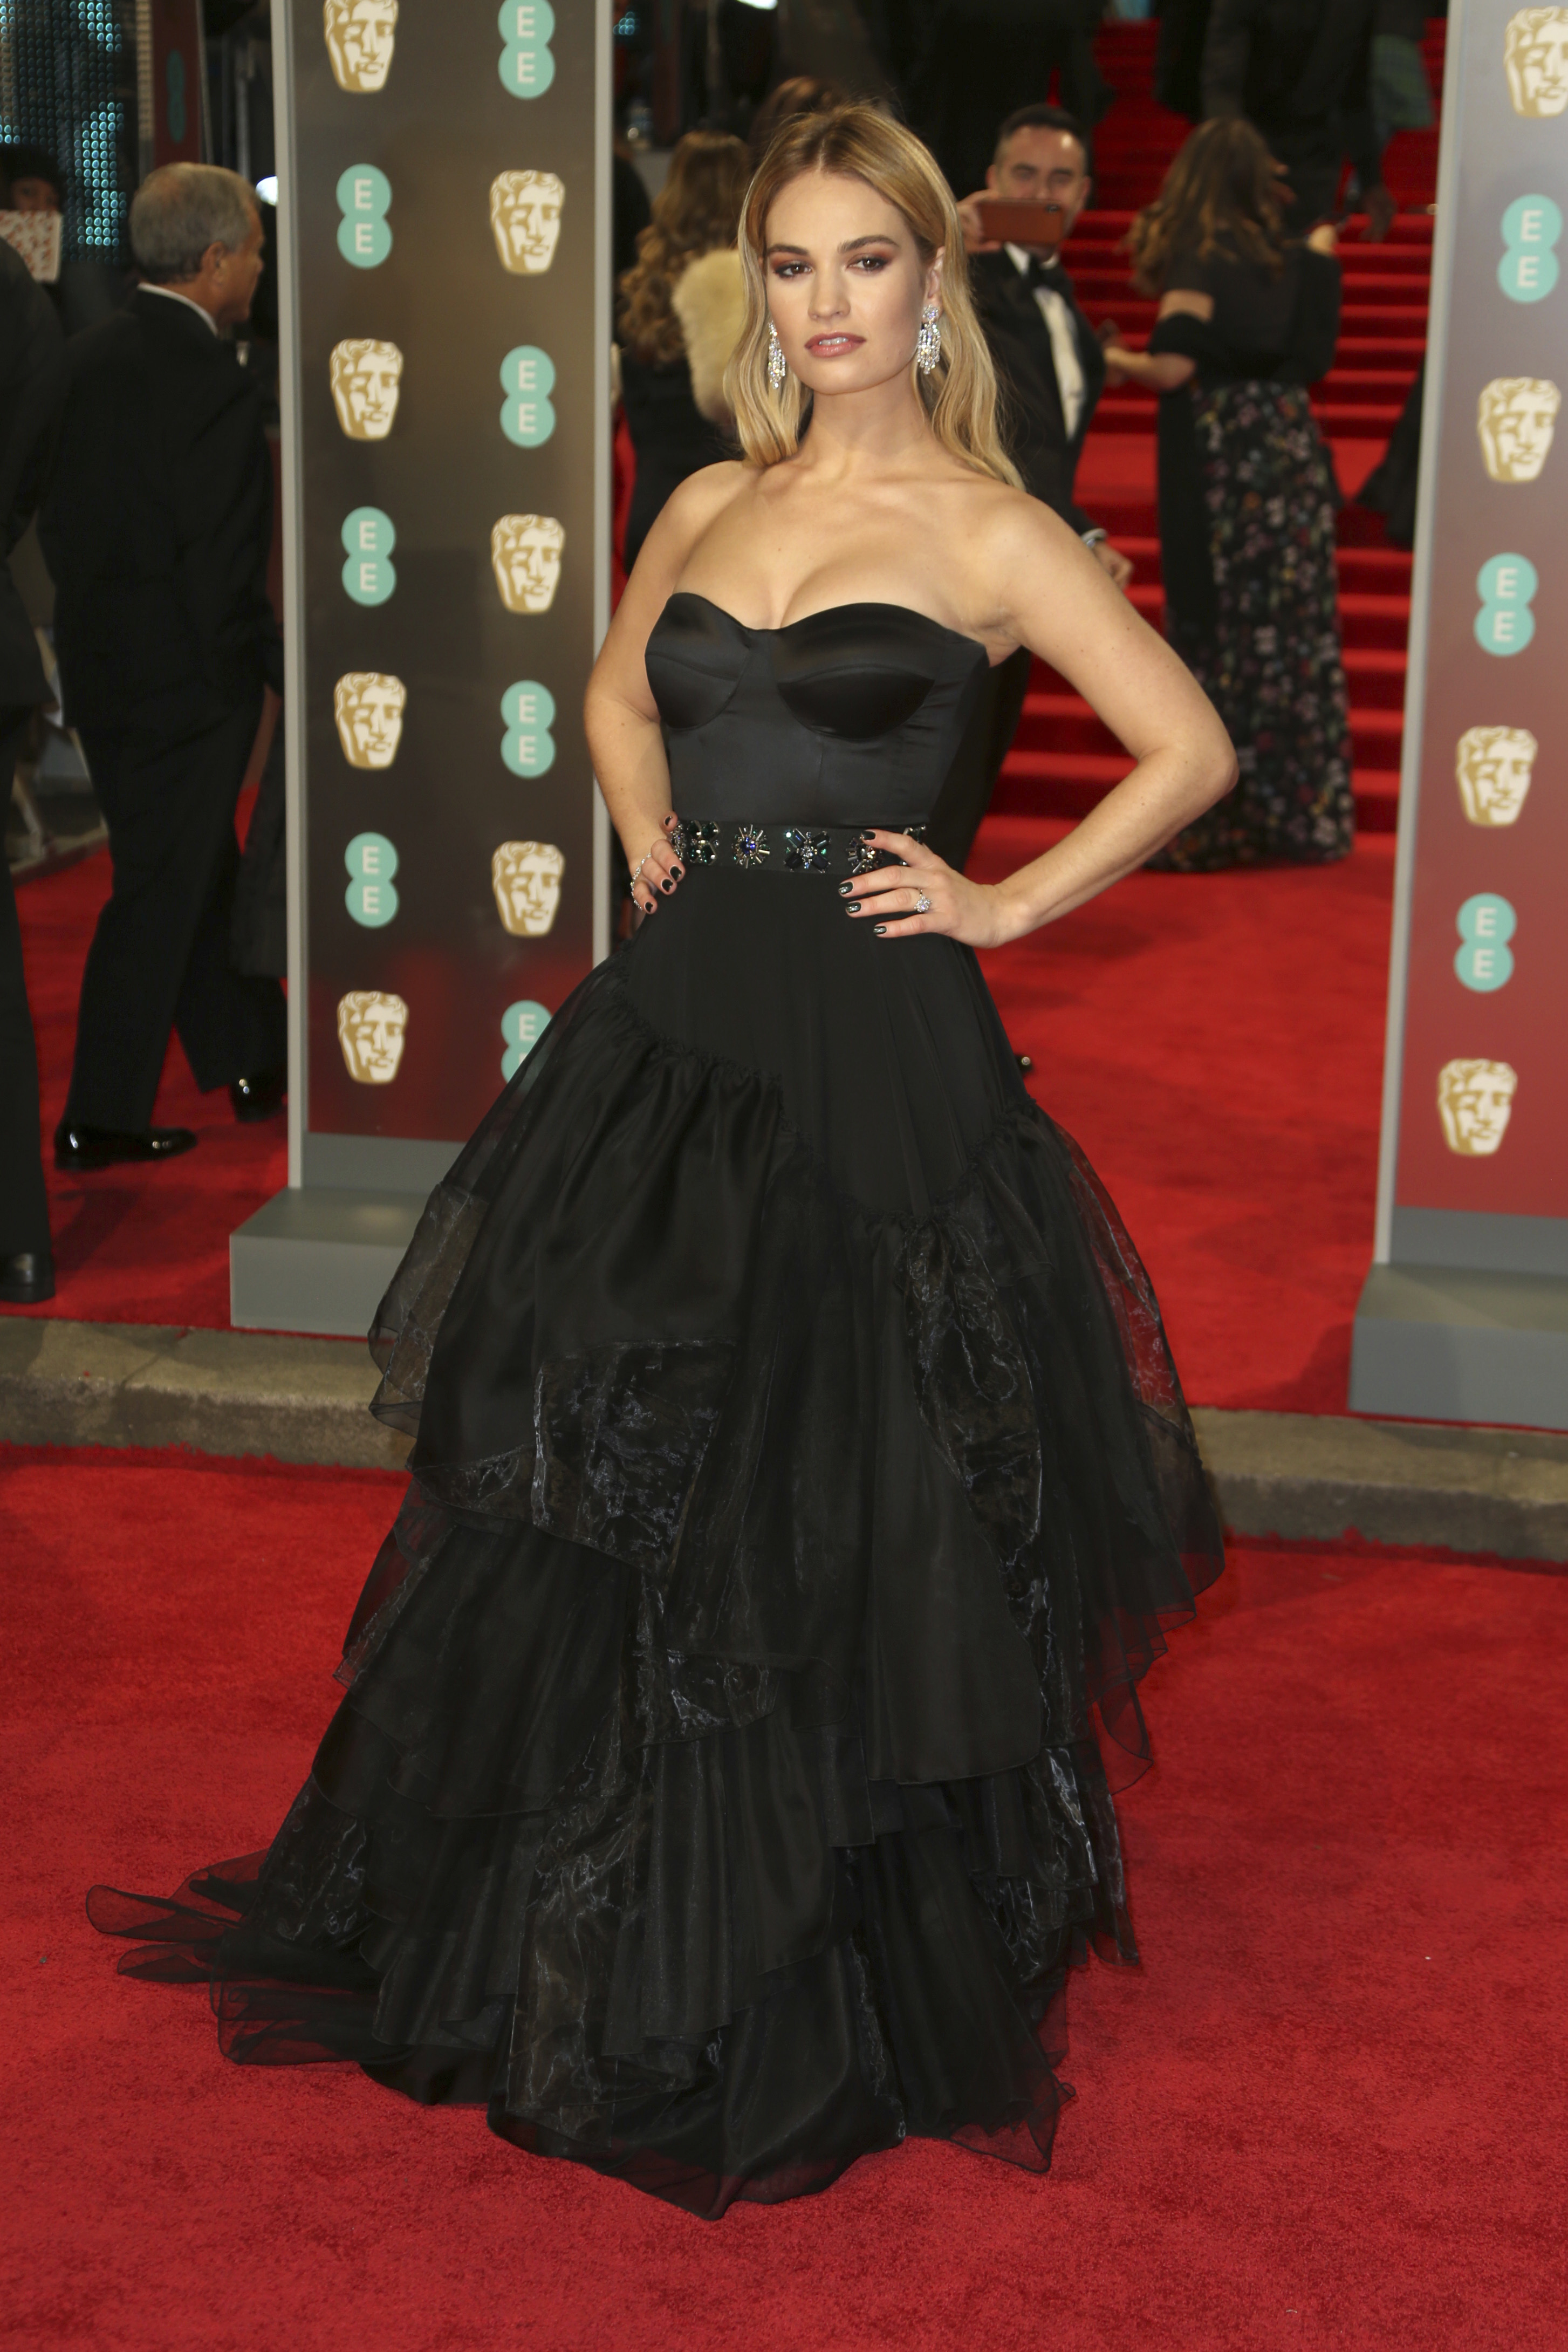 <div class='meta'><div class='origin-logo' data-origin='AP'></div><span class='caption-text' data-credit='Joel C Ryan/Invision/AP'>Actress Lily James poses for photographers upon arrival at the BAFTA 2018 Awards in London, Sunday, Feb. 18, 2018.</span></div>